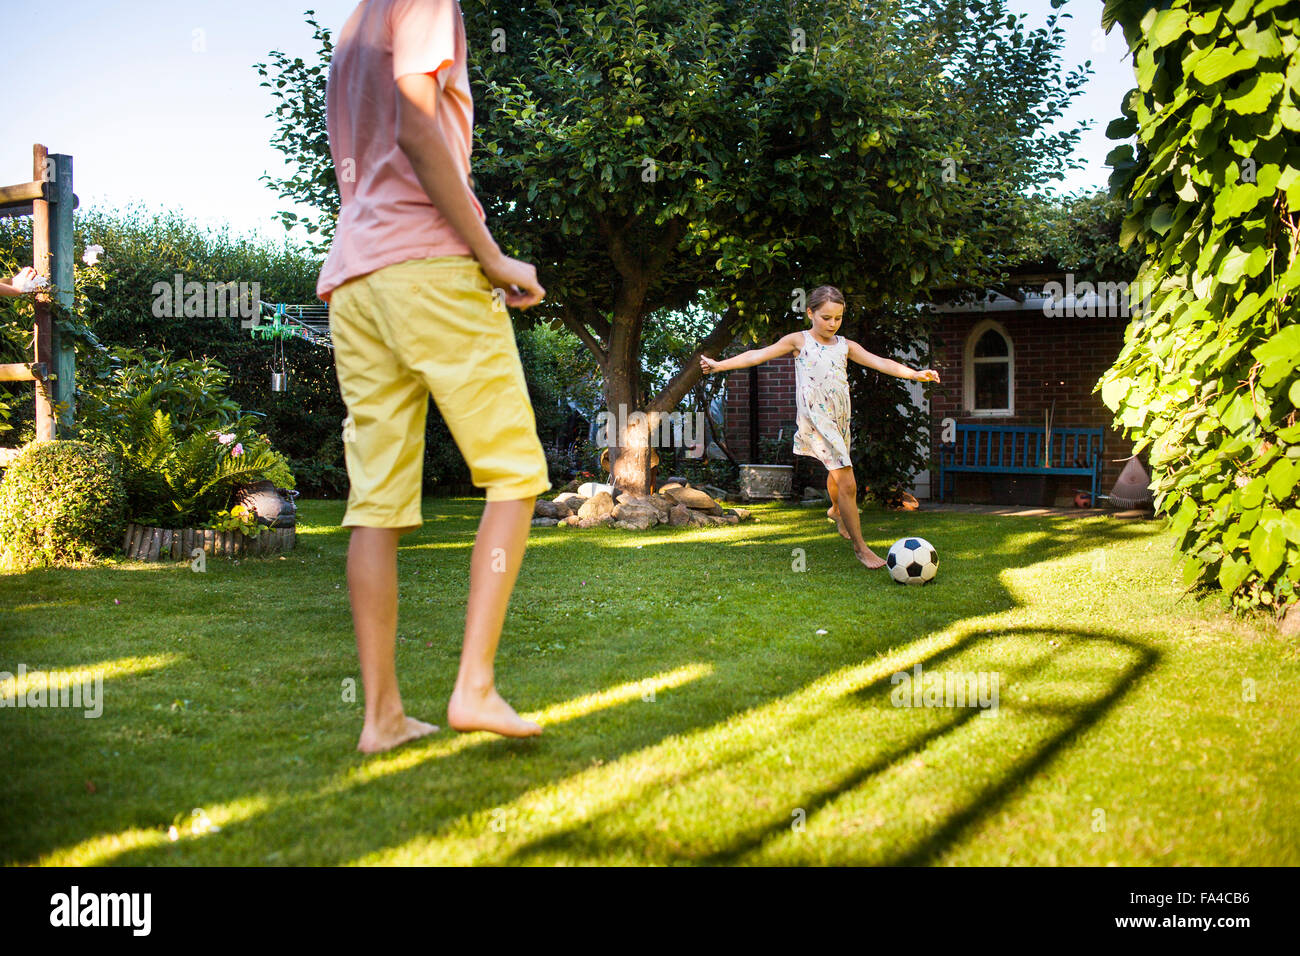 Brother And Sister Playing Soccer In Backyard